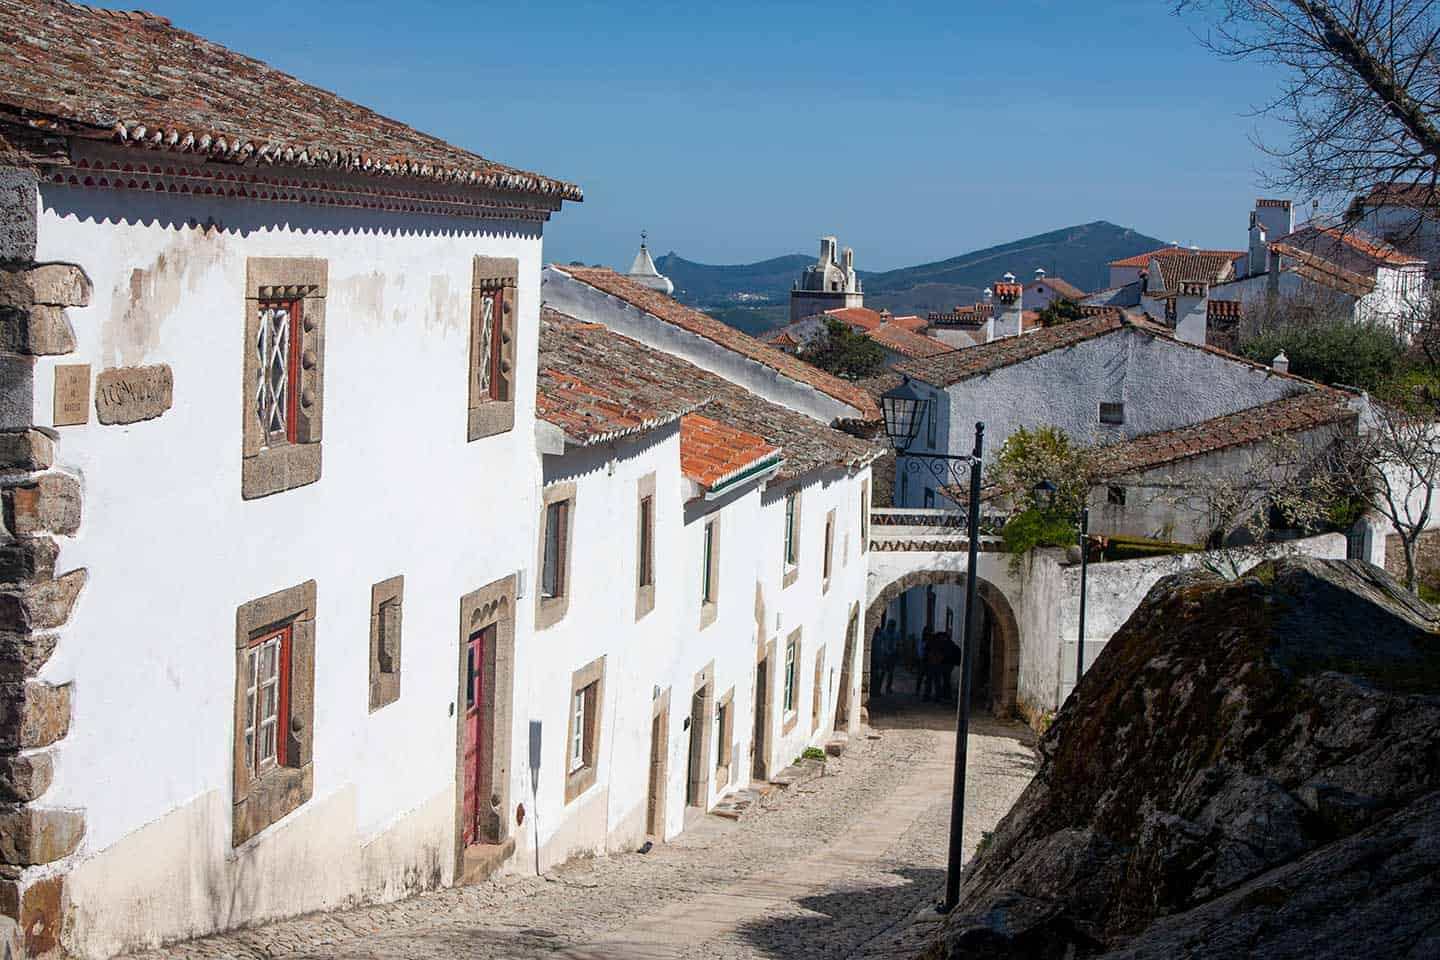 Image of the main street in marvao village Portugal